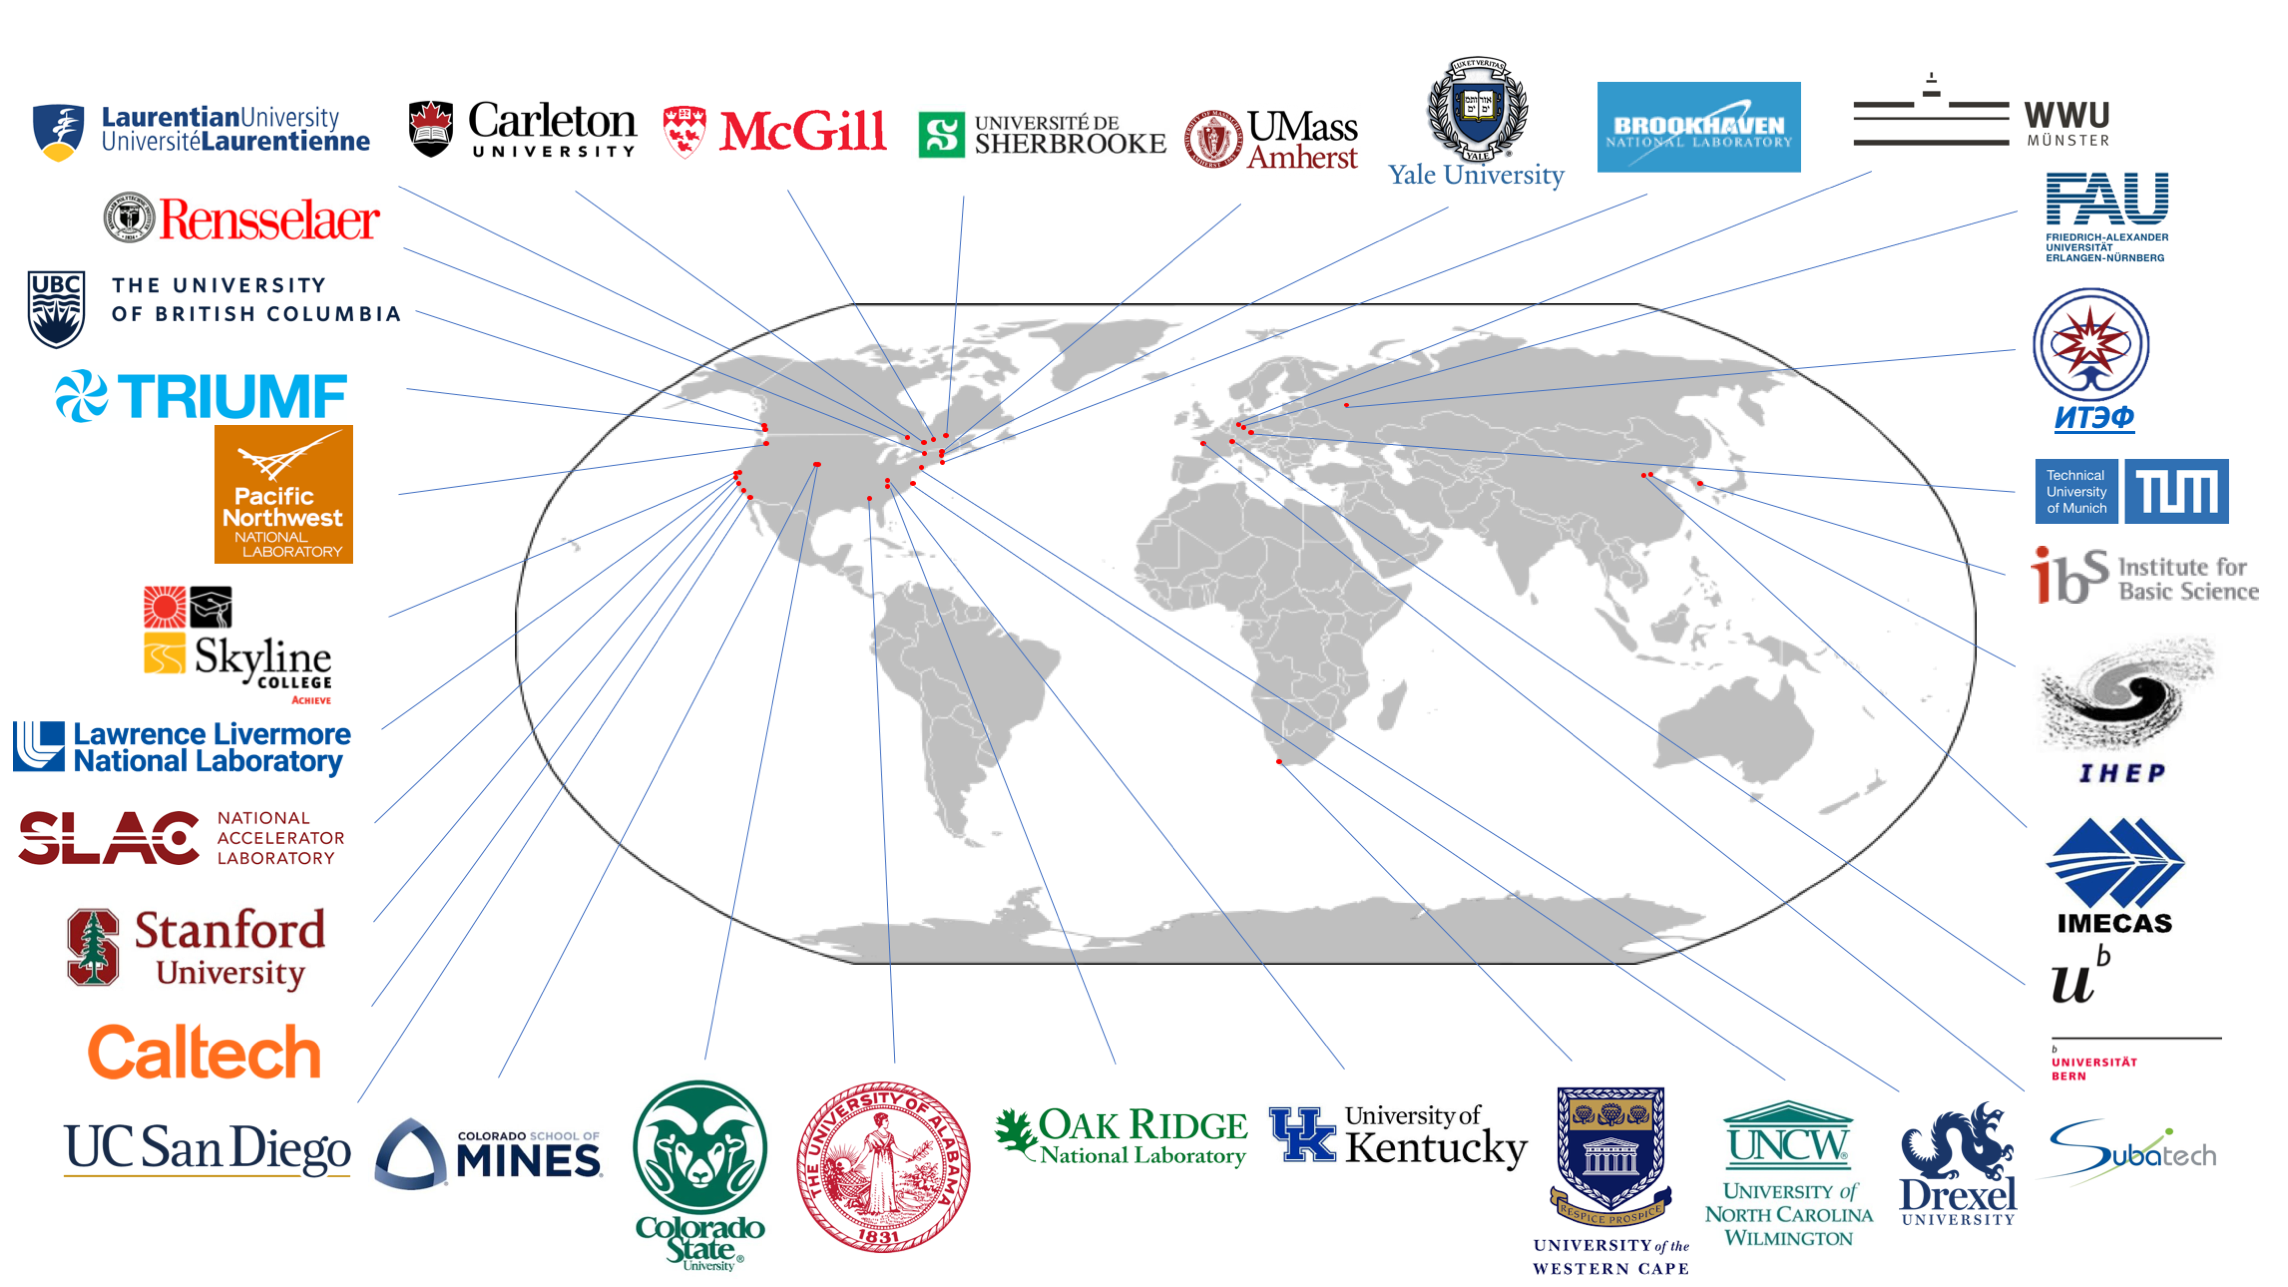 world map with logos of collaborating institutions